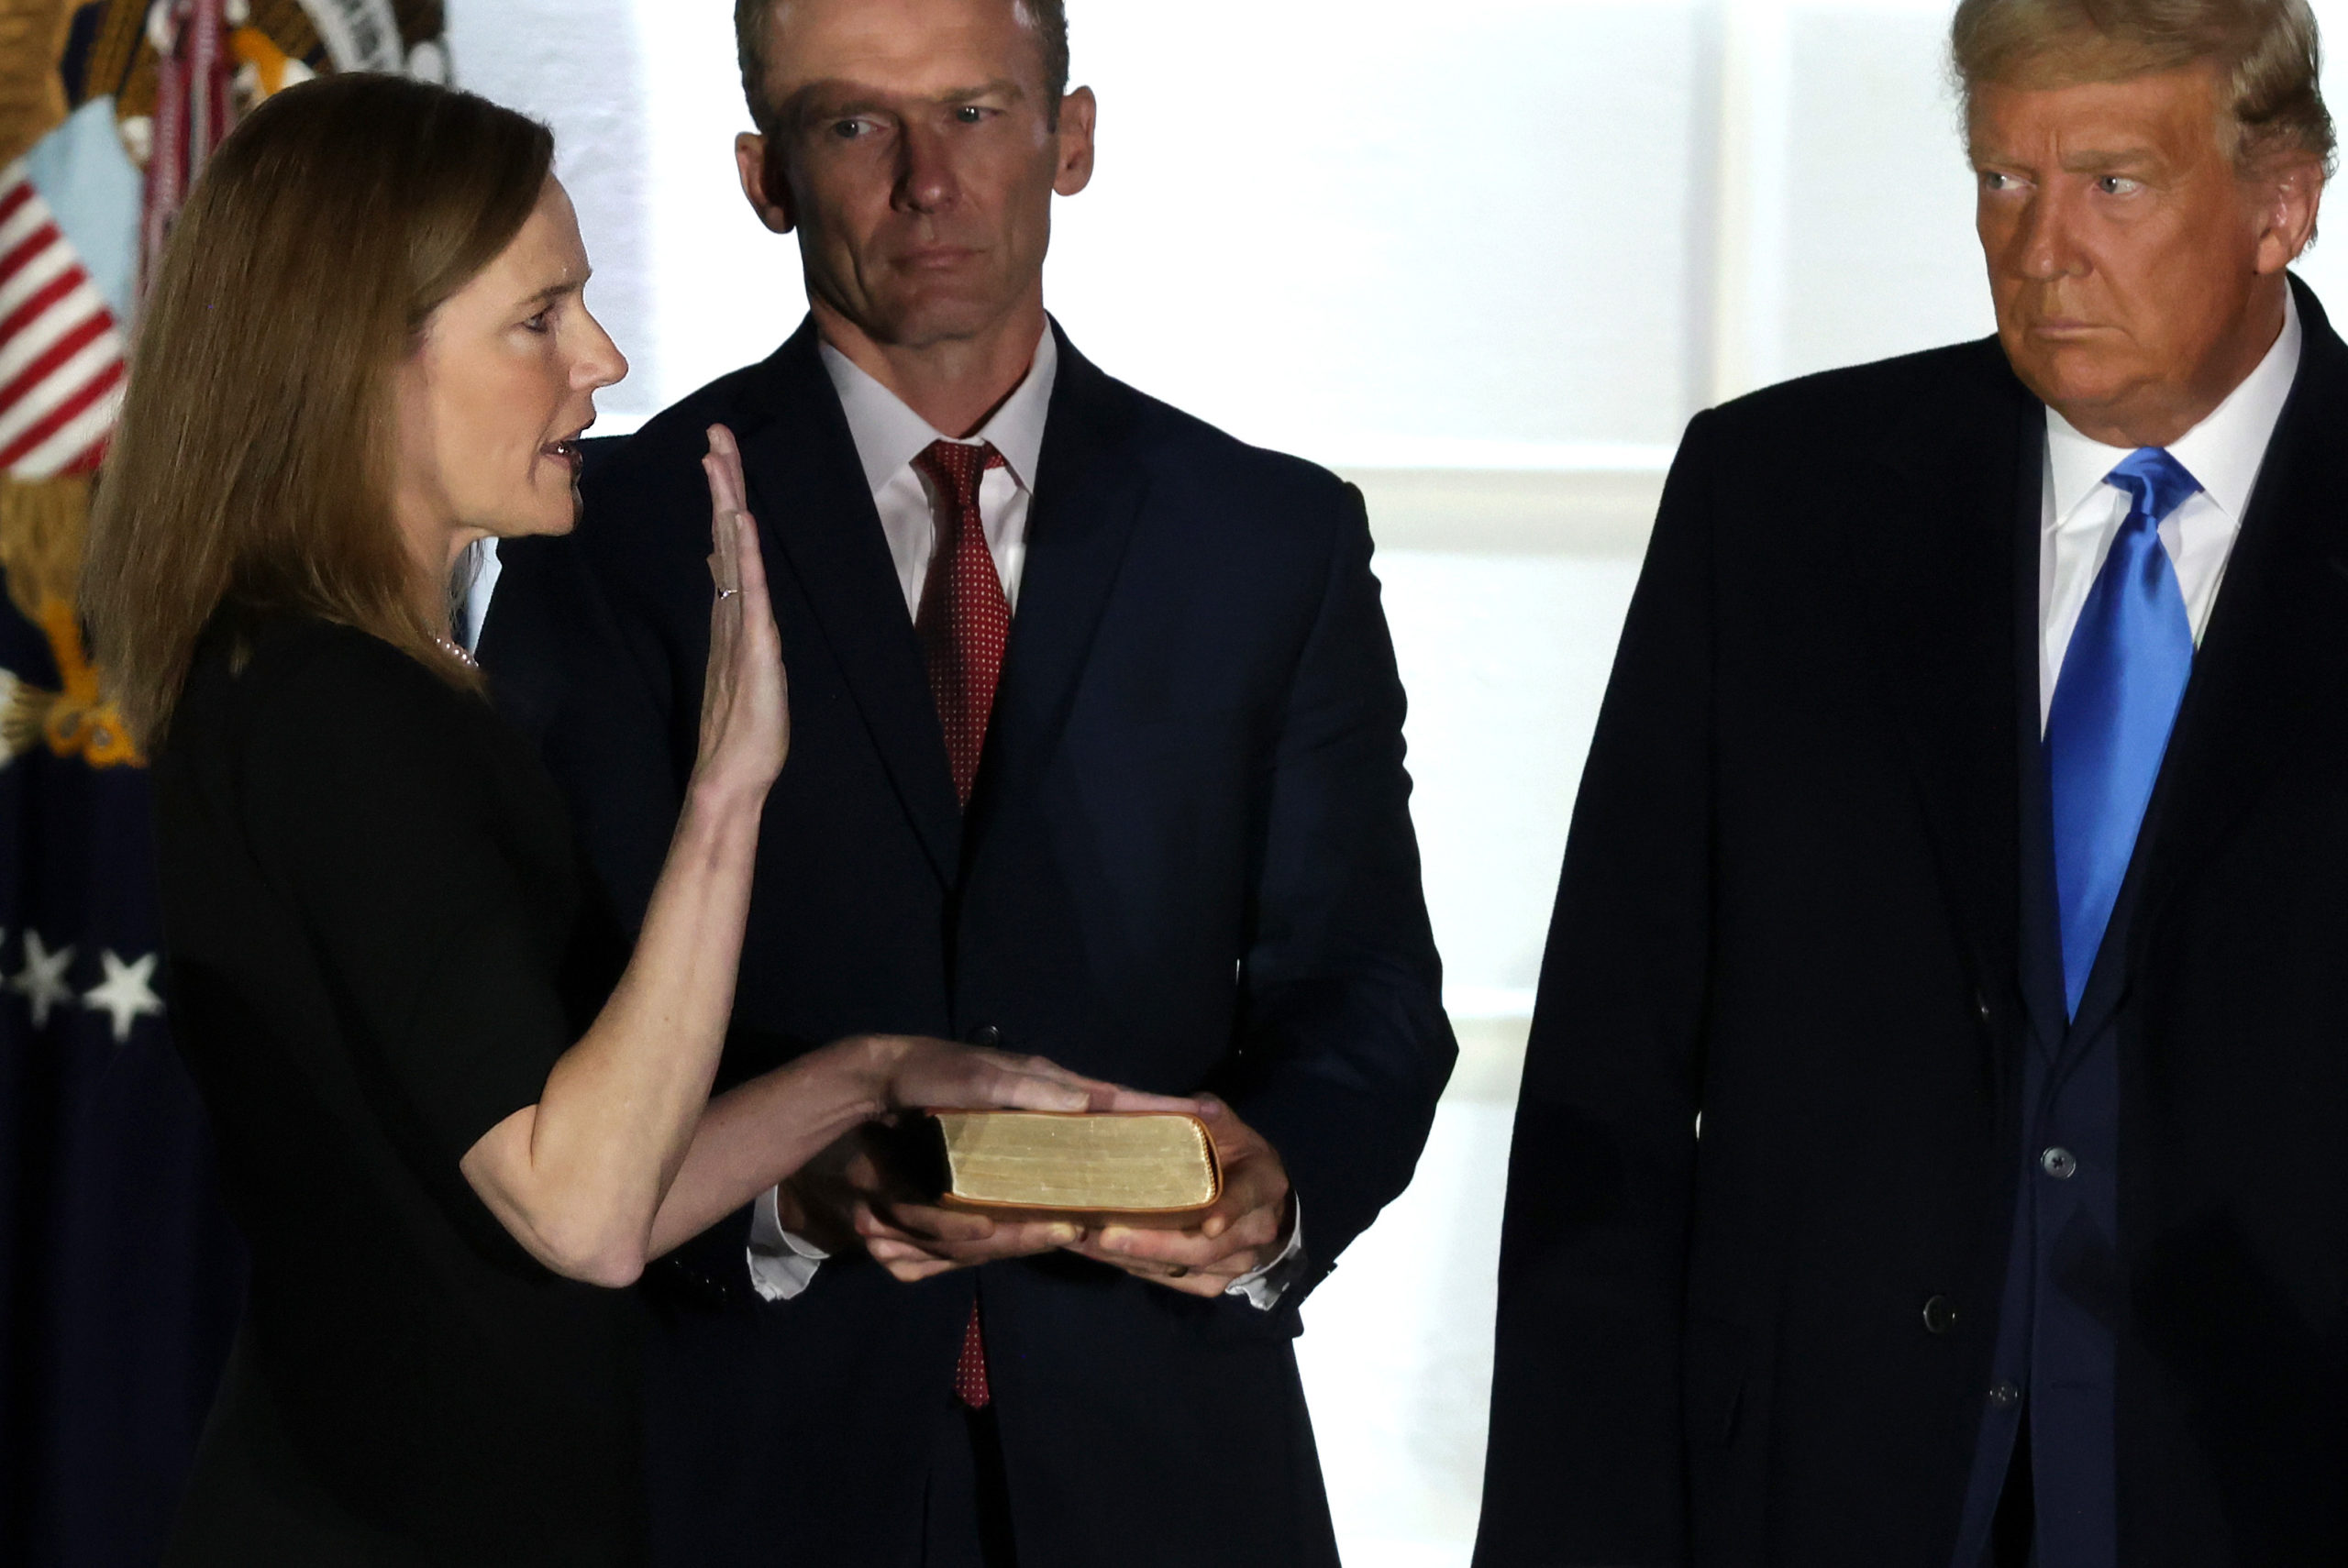 U.S. Supreme Court Associate Justice Amy Coney Barrett participates in a ceremonial swearing-in event as her husband Jesse Barrett and U.S. President Donald Trump look on on the South Lawn of the White House October 26, 2020 in Washington, DC. The Senate confirmed Barrett's nomination to the Supreme Court Monday by a vote of 52-48. (Alex Wong/Getty Images)